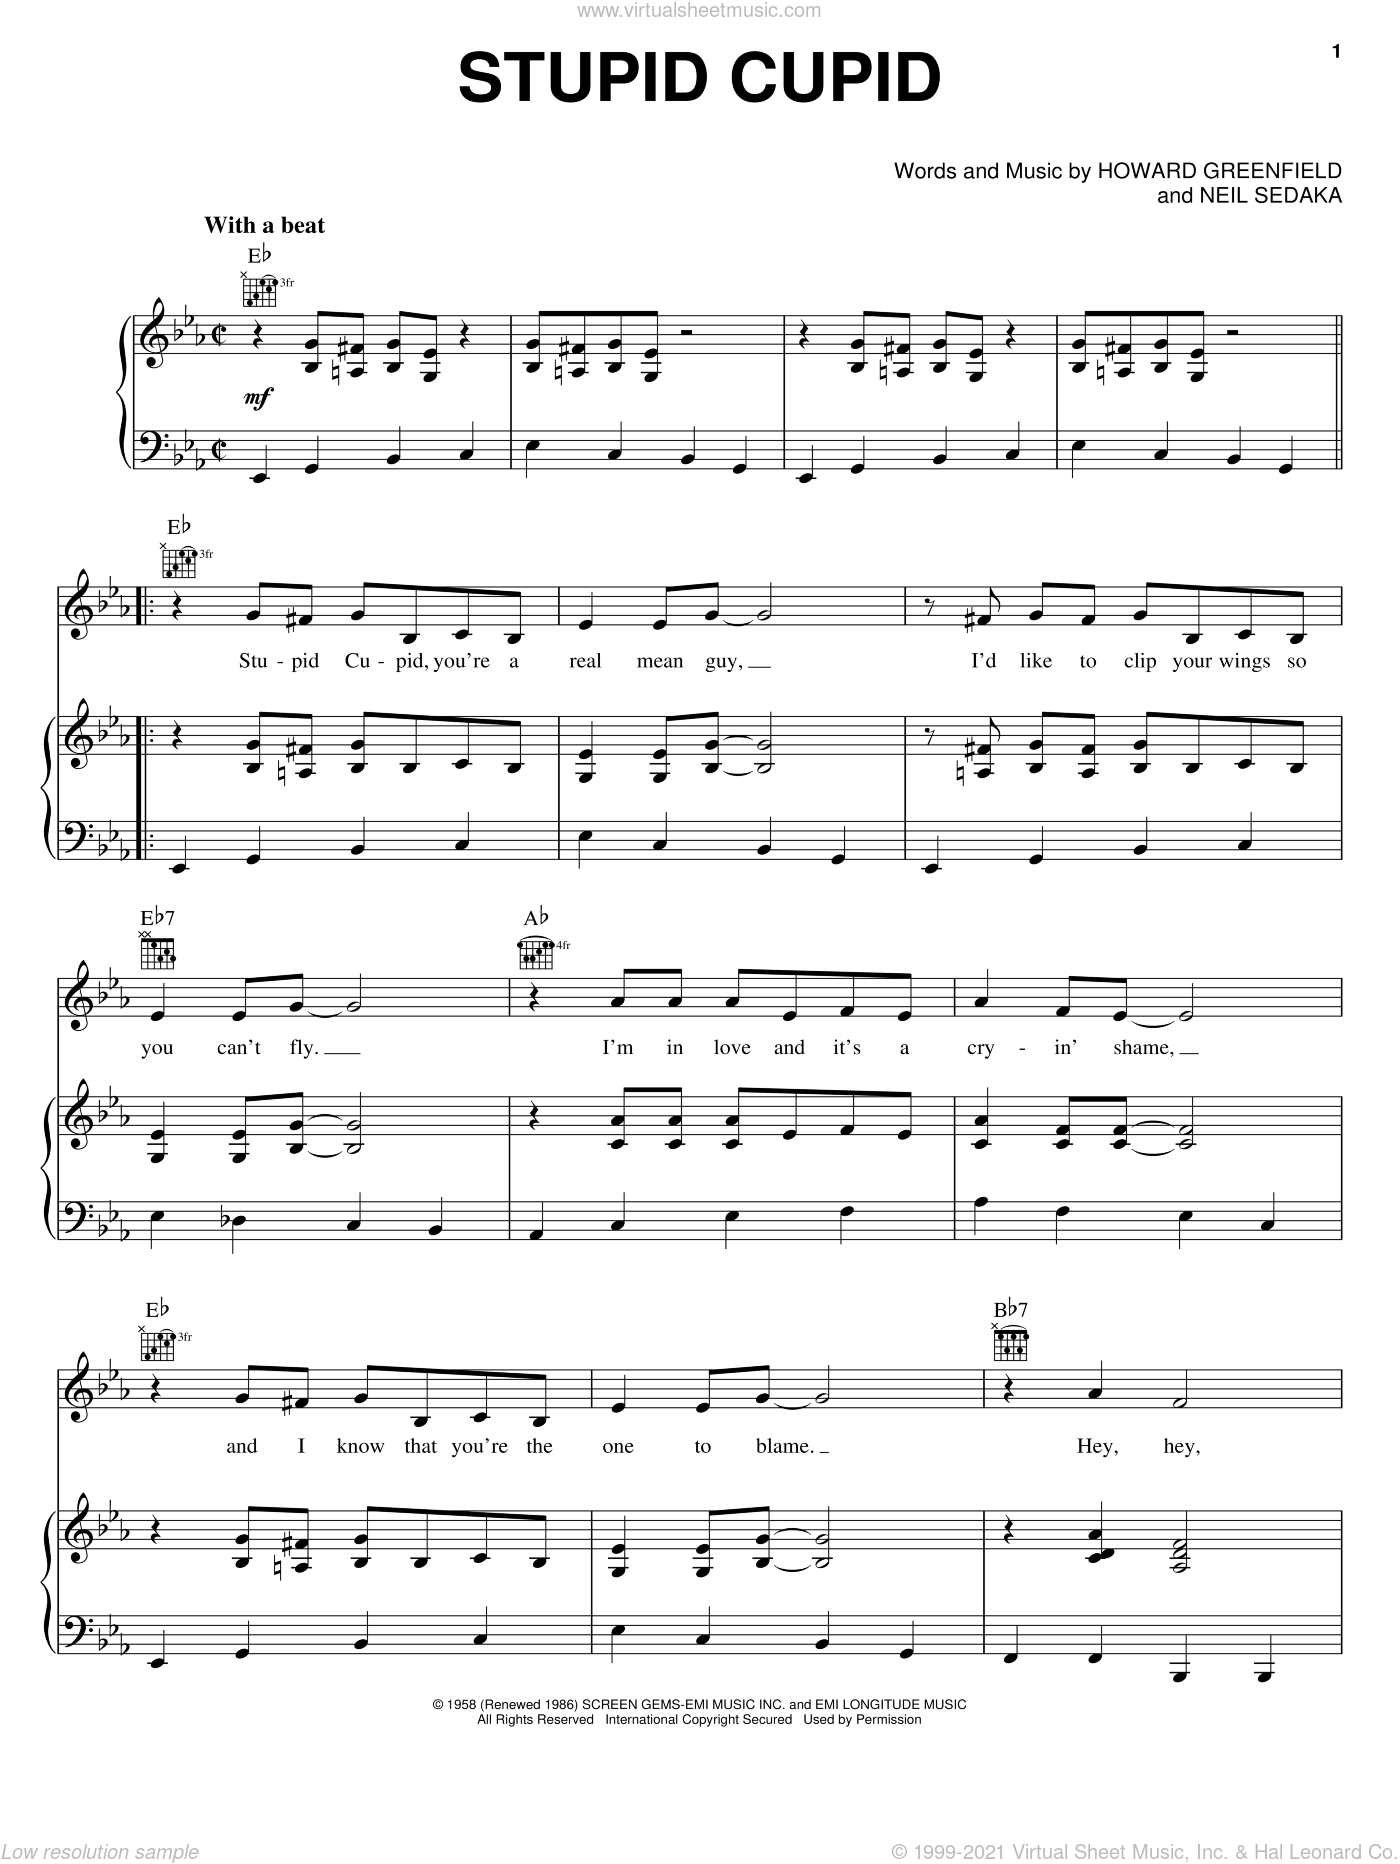 Stupid Cupid sheet music for voice, piano or guitar by Connie Francis, Howard Greenfield and Neil Sedaka, intermediate skill level